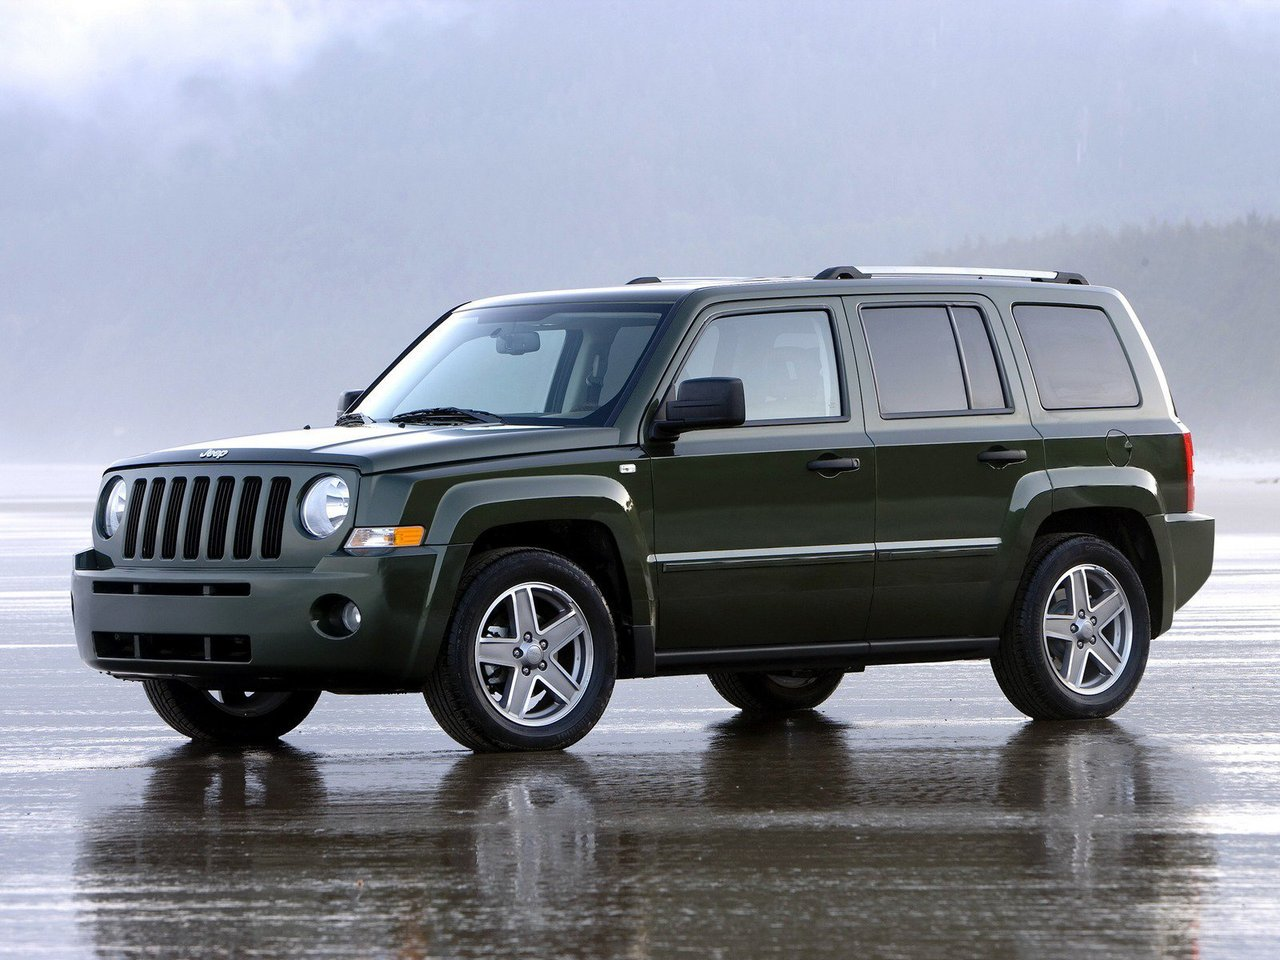 Jeep Liberty (Patriot)